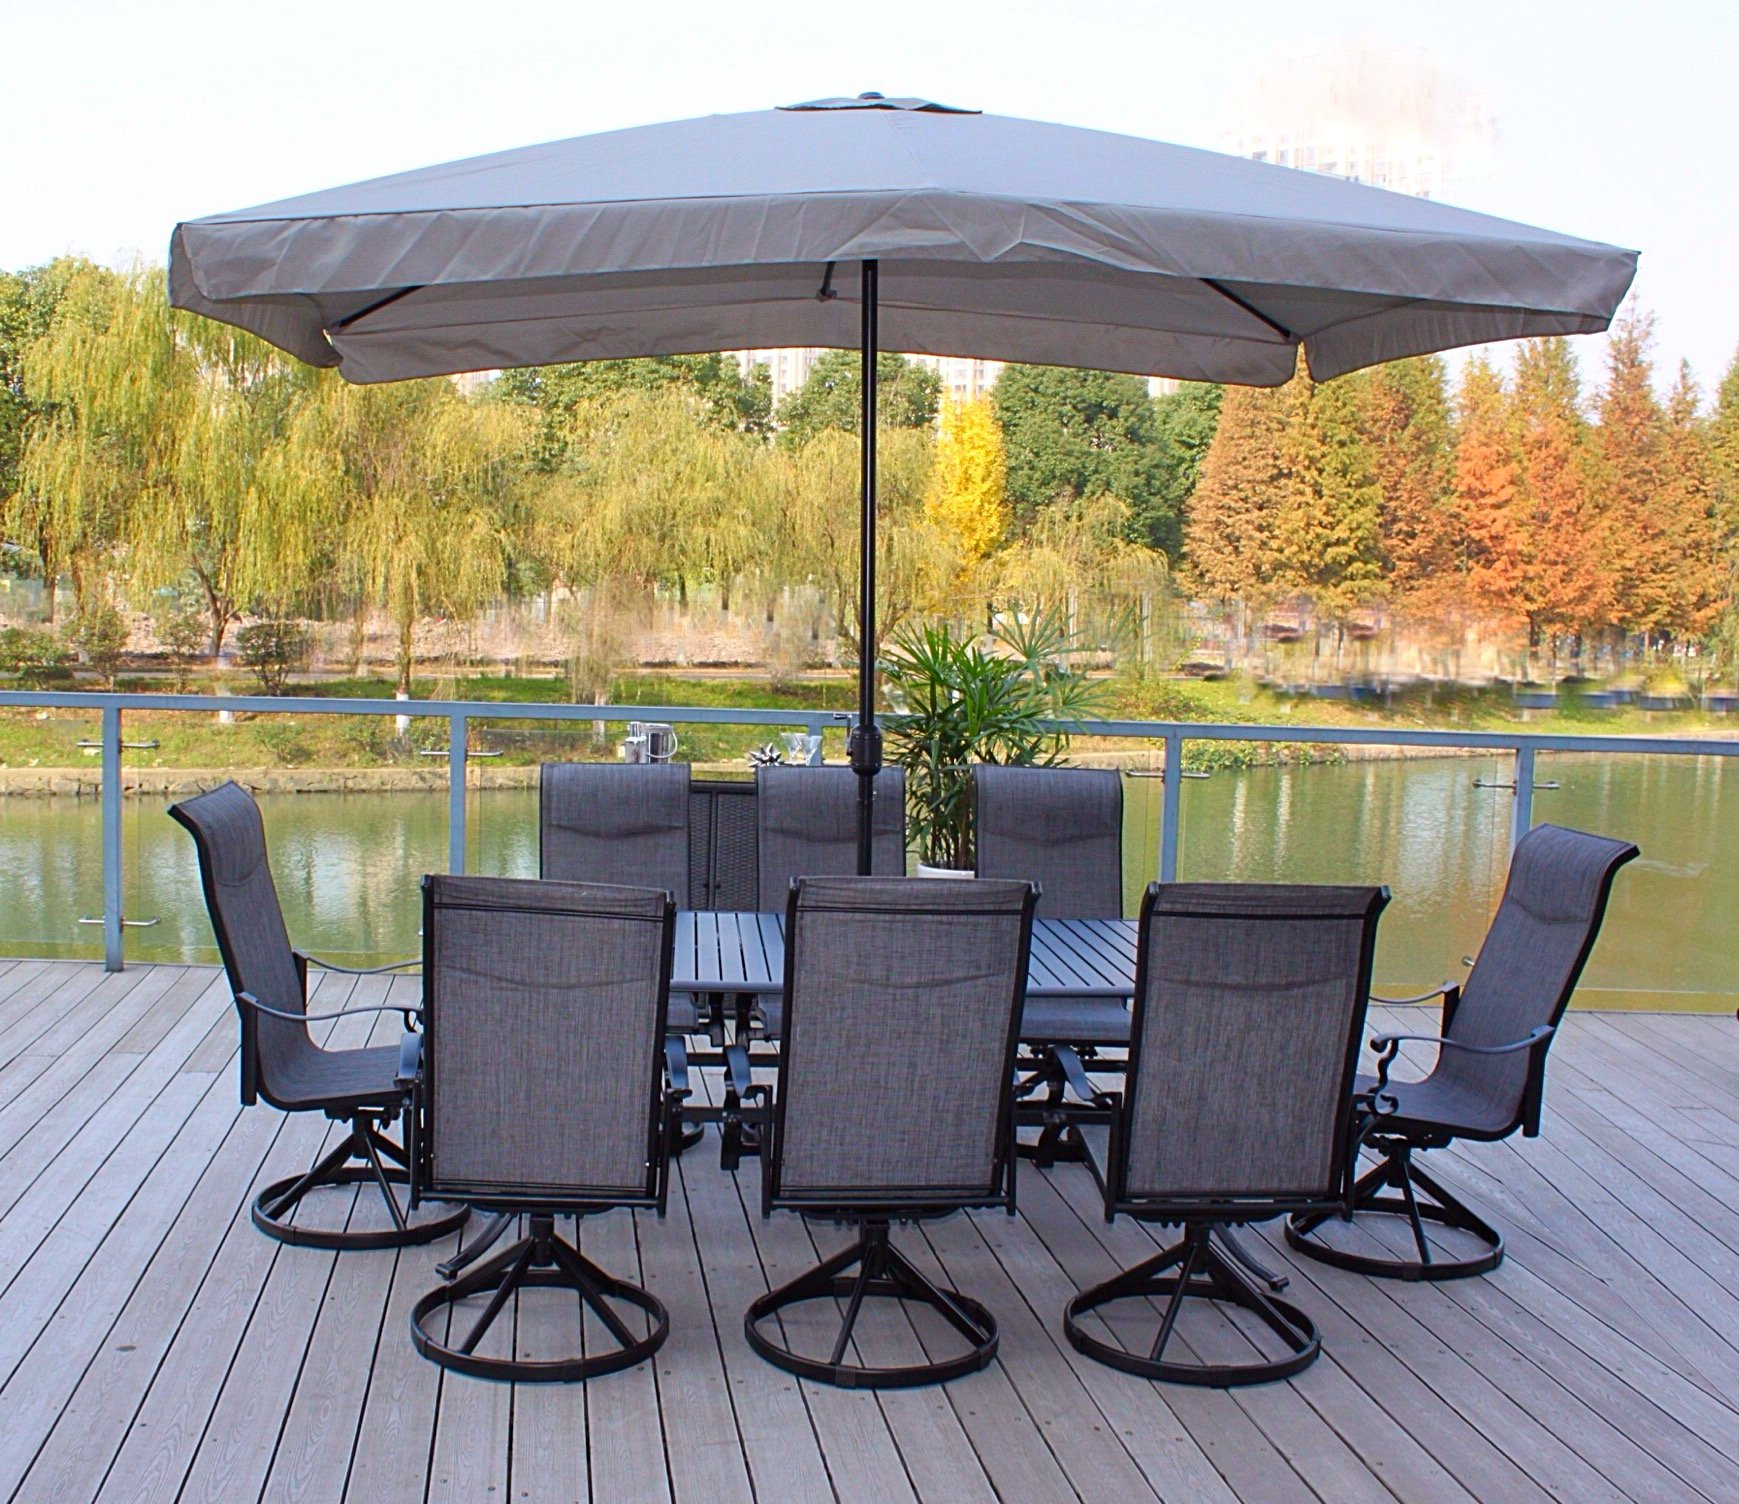 "Pebble Lane Living 9pc Cast Aluminum Patio Dining Furniture Set - Seats 8 - 8 Cast Alumiunum Swivel Rocking Dining Chairs : 41"" H x 30"" D x 27"" W 1 Aluminum Slat Top Dining Table : 82"" x 42"" x 29"" Rectangle Grey Patio Umbrella : 6.5' x 10' is sold separtely - patio-furniture, dining-sets-patio-funiture, patio - 91WwZI0fAbL -"